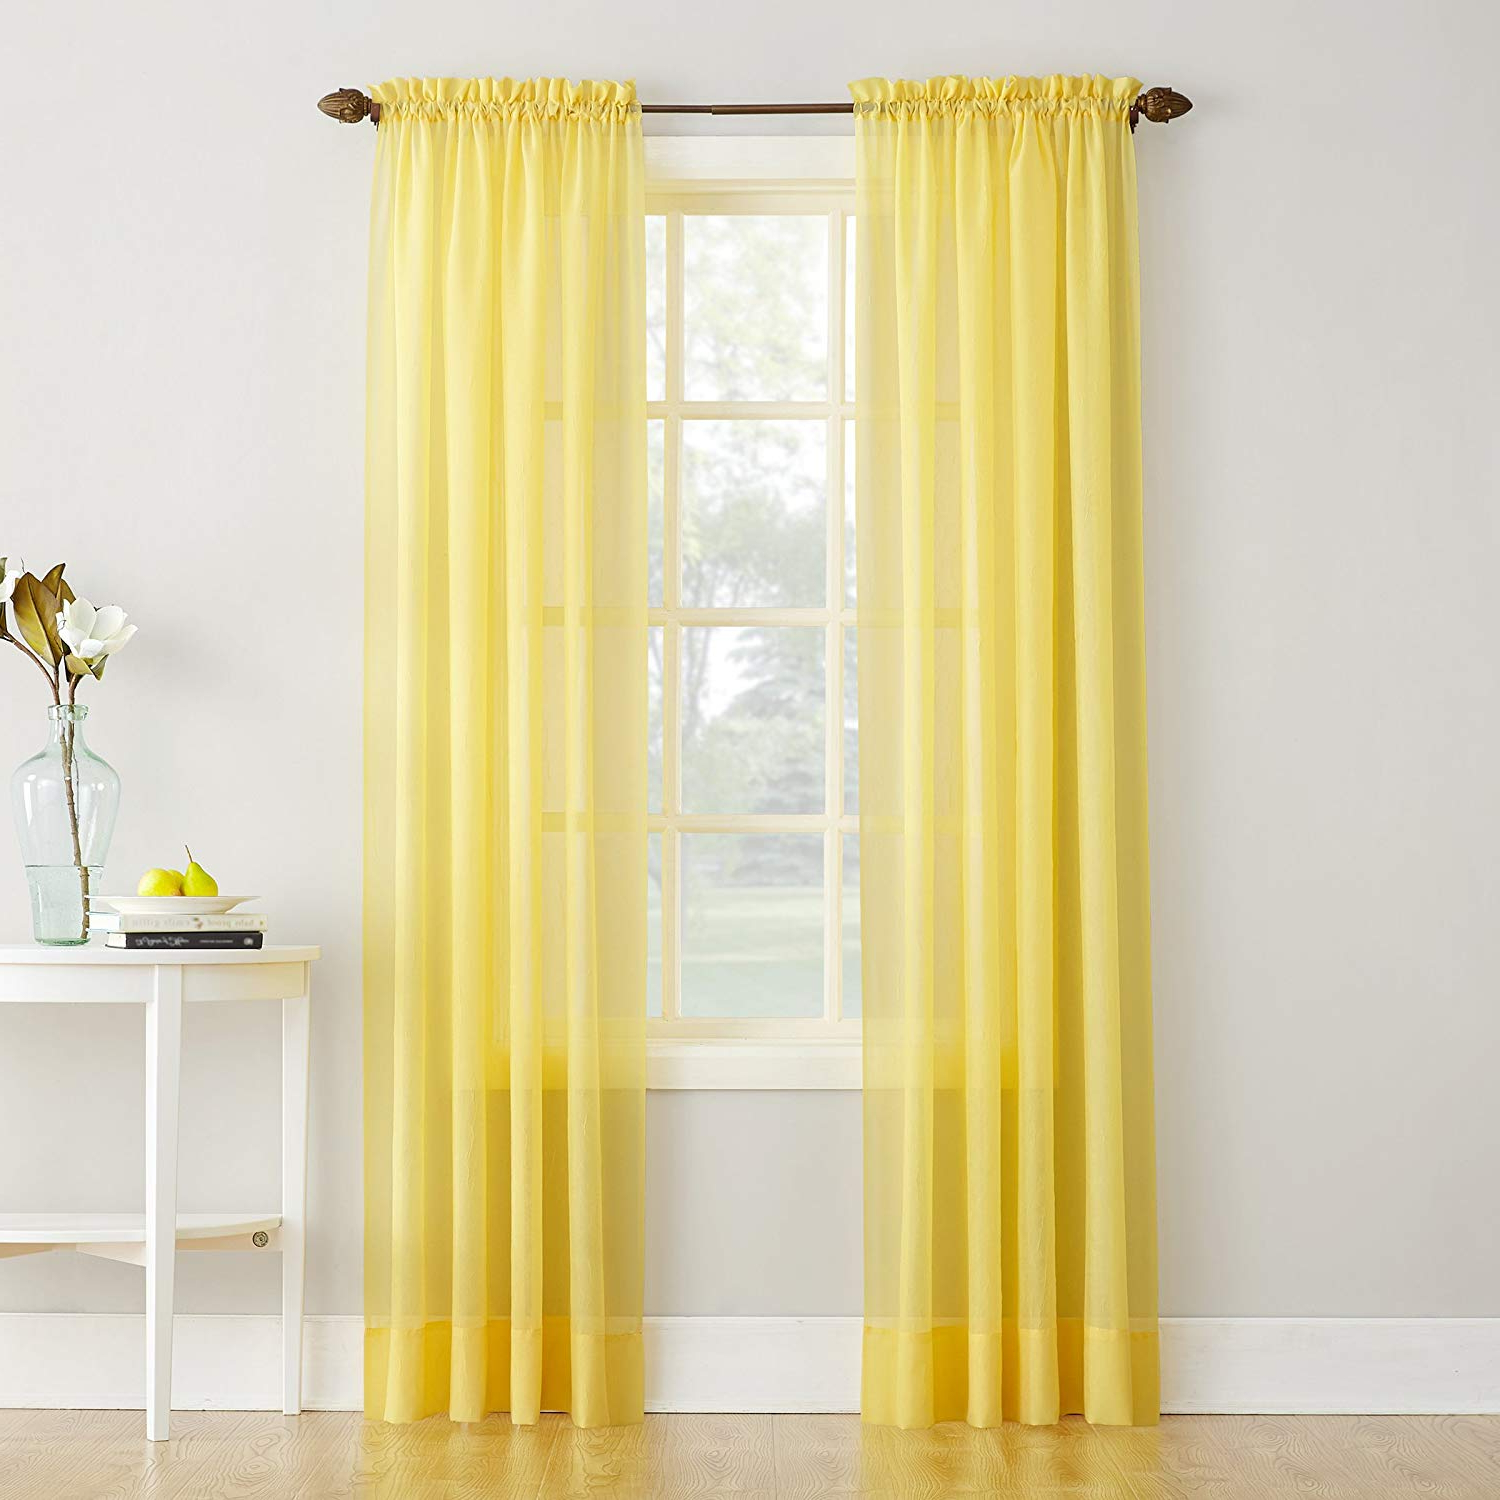 Widely Used Erica Sheer Crushed Voile Single Curtain Panels Intended For No (View 7 of 20)